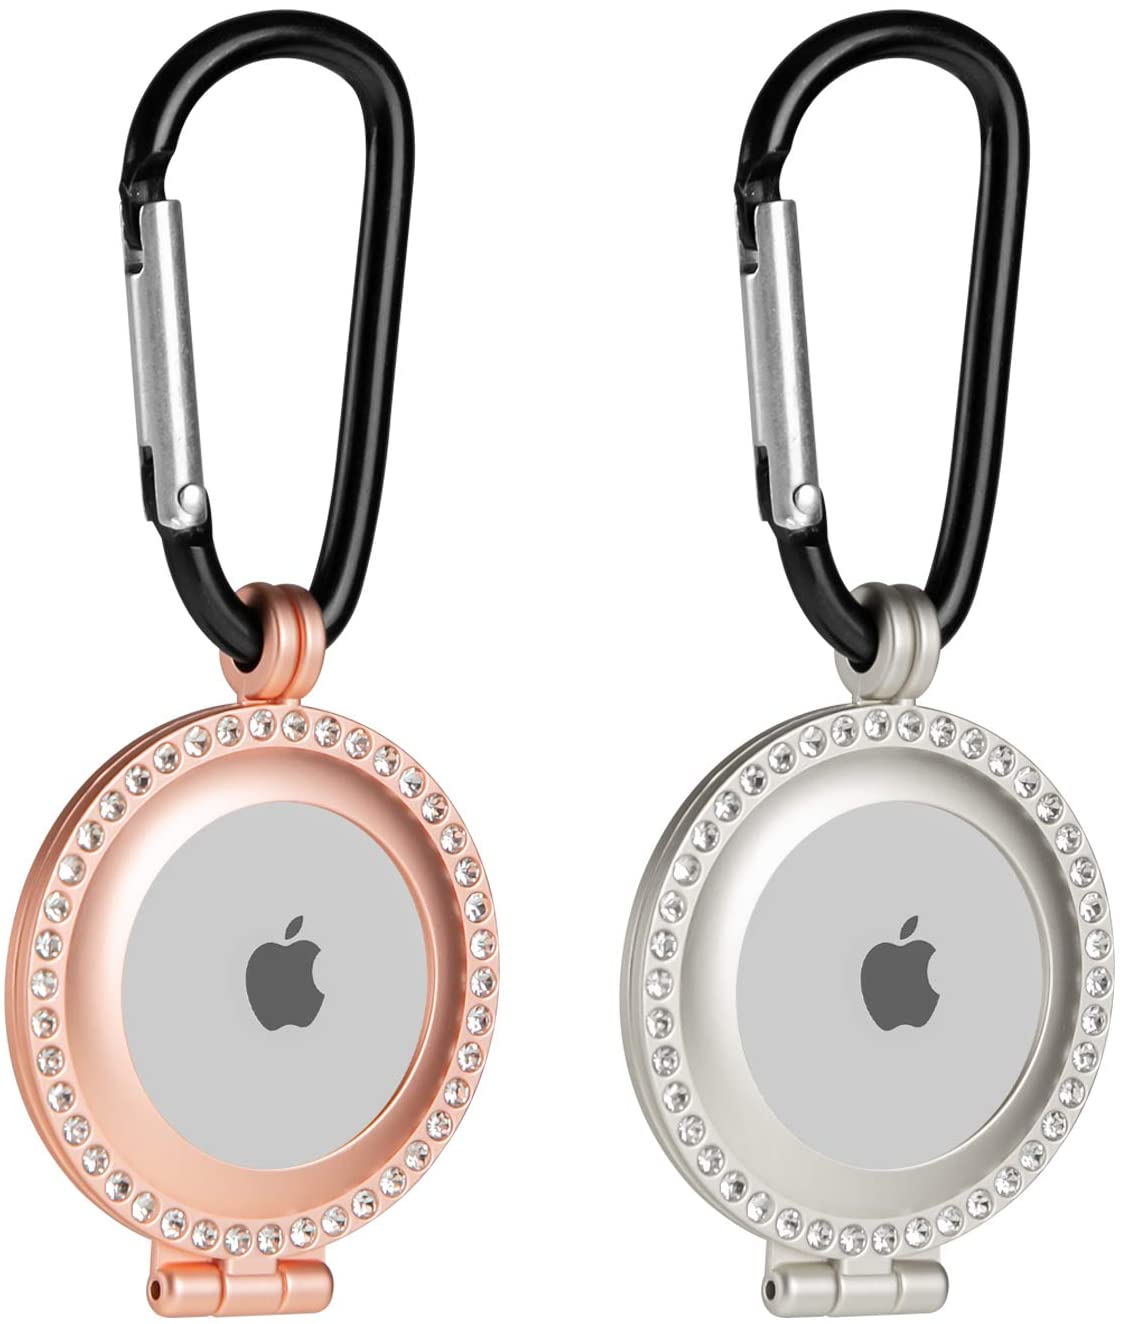 Orzero Alloy Metal Case for AirTag (2 Pack)